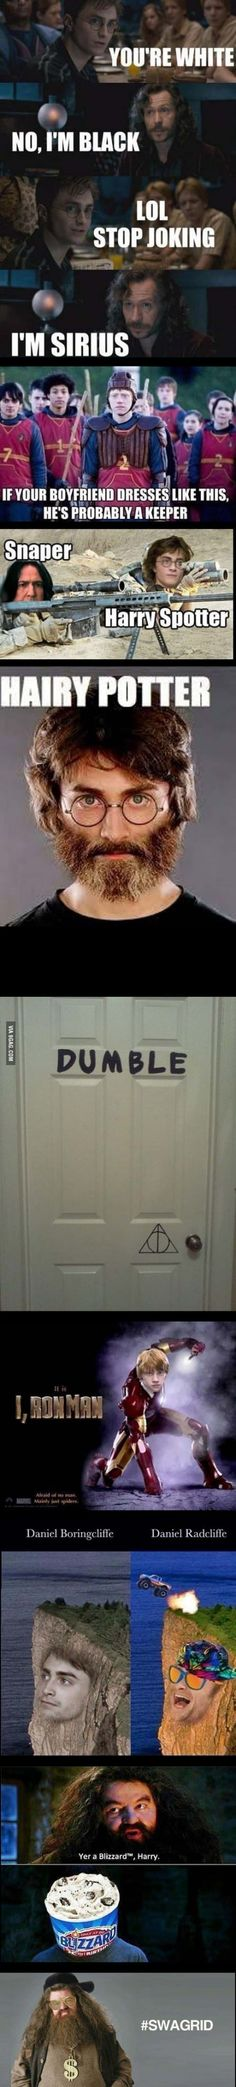 Harry Potter Puns and Memes So Dumb You'll Feel Bad For Laughing - Gaming